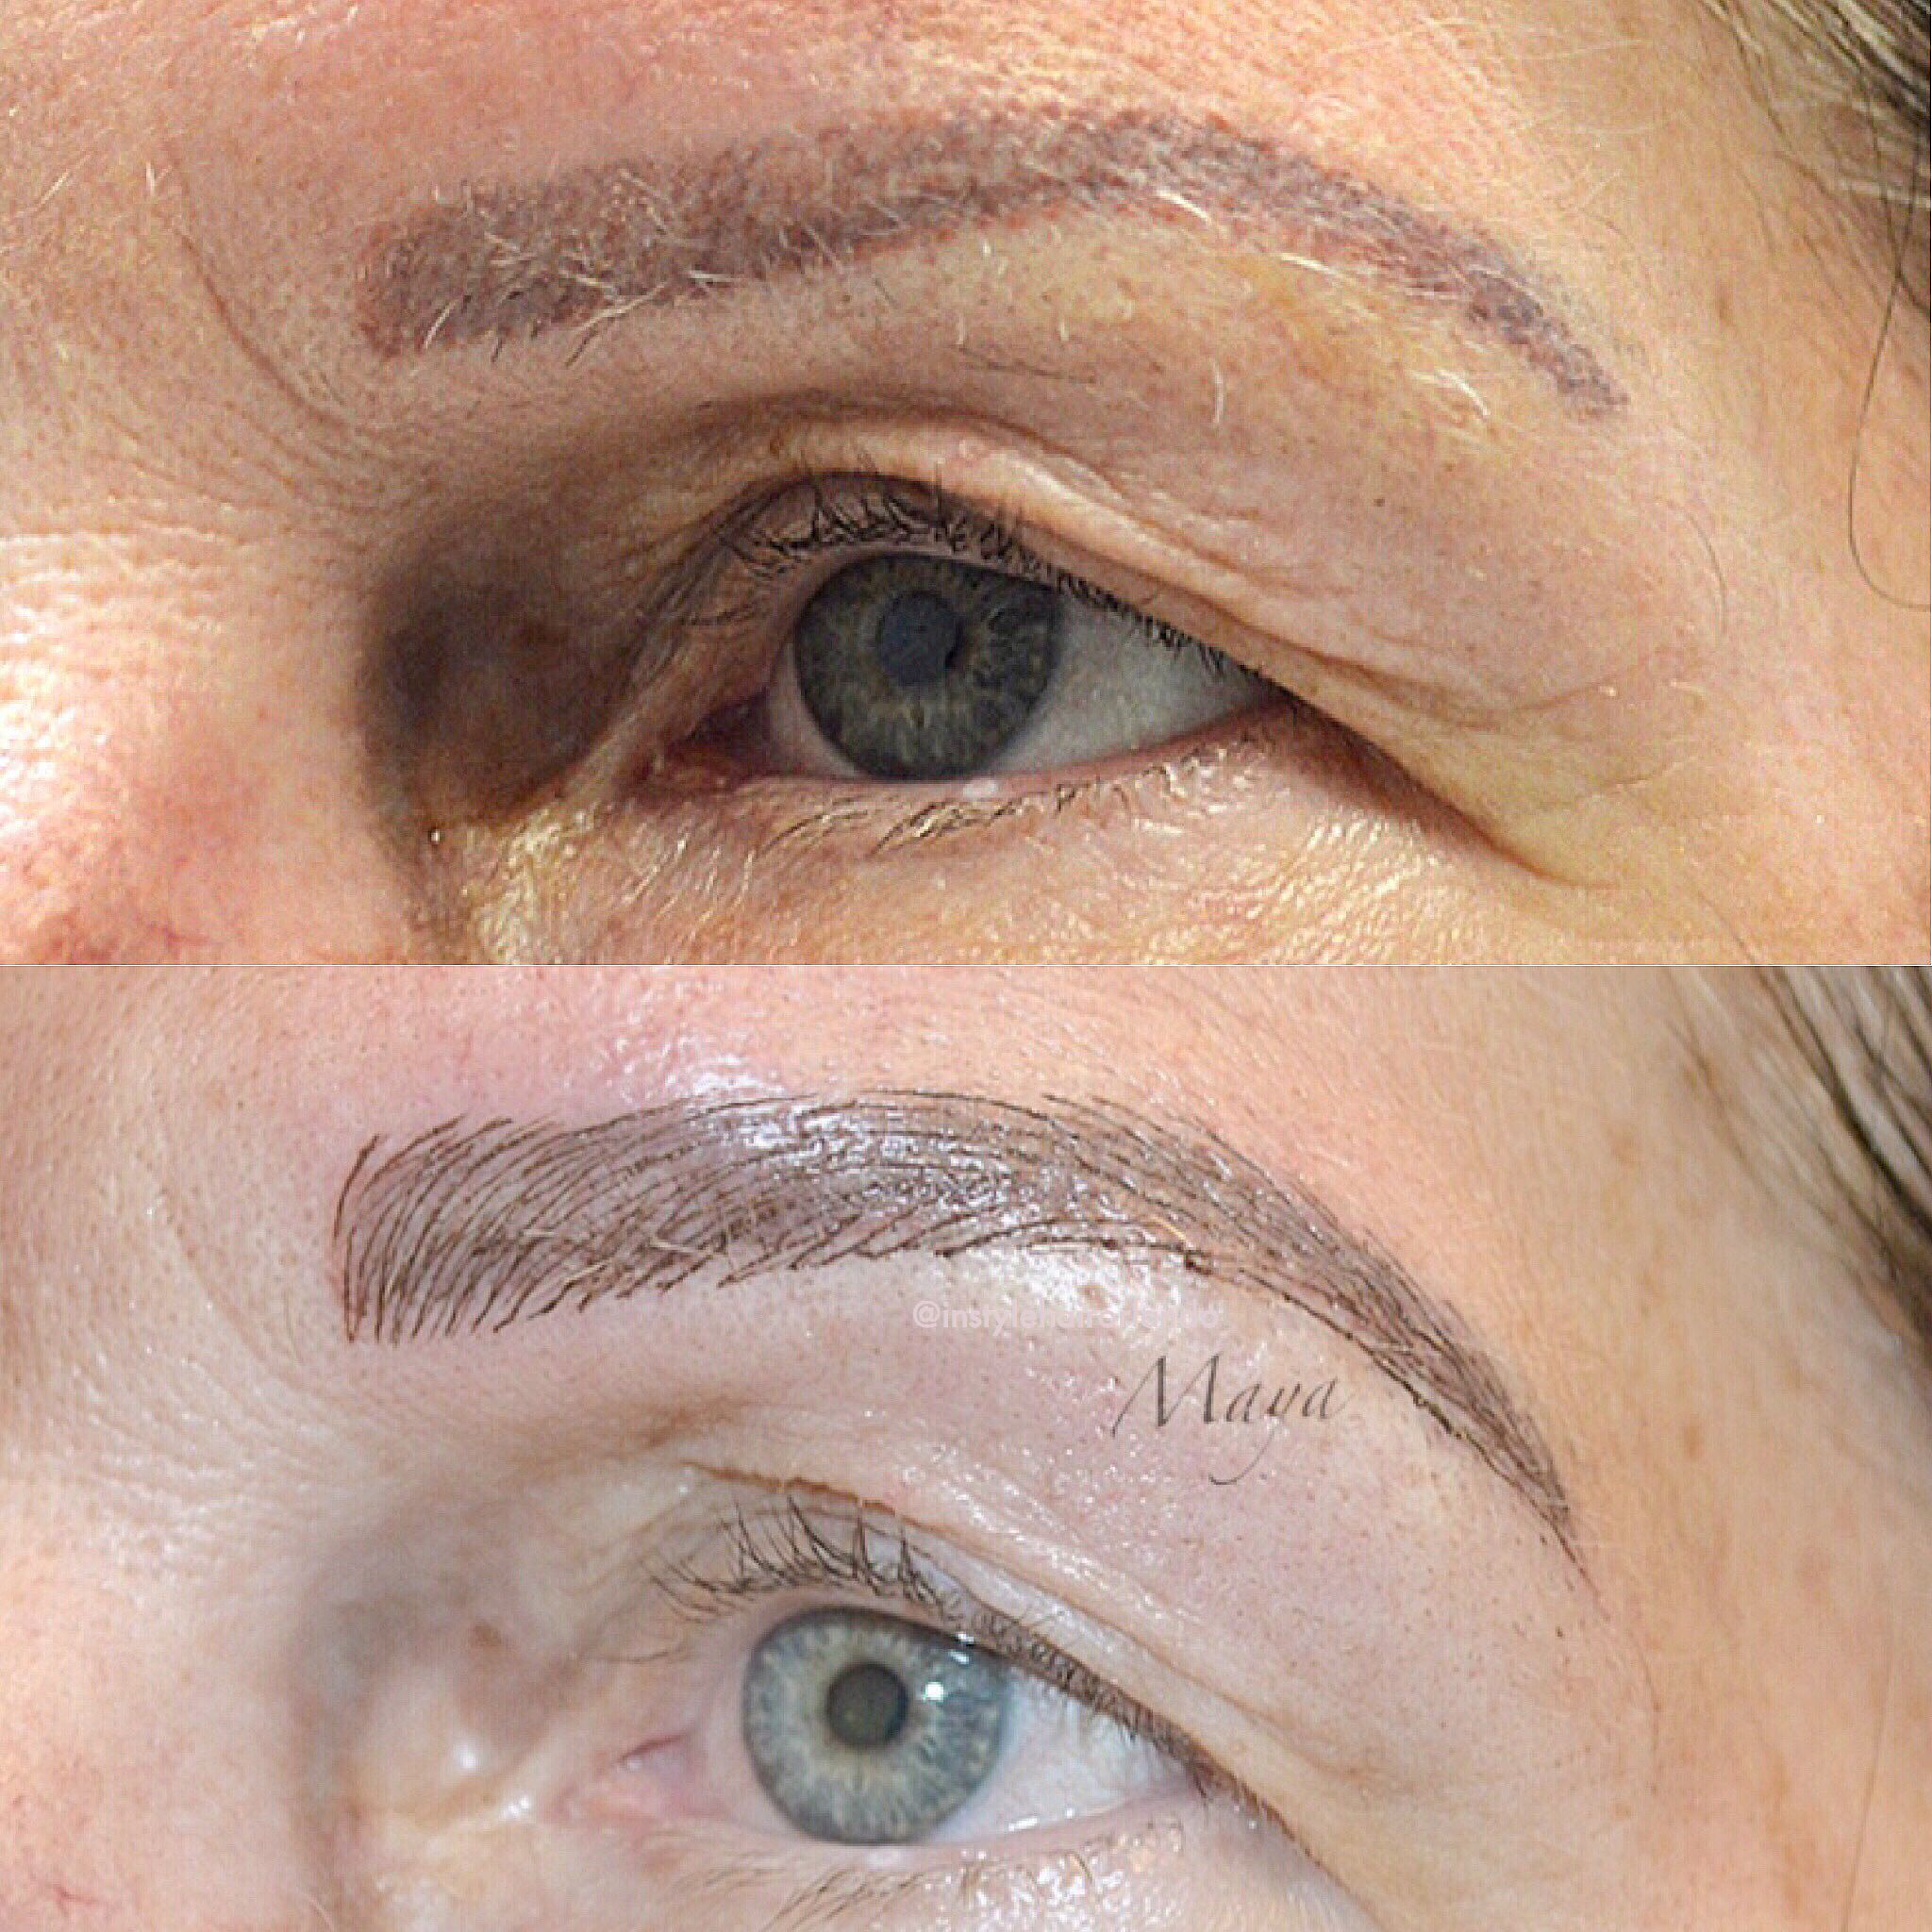 Microblading By Maya At In Style Waterford Lakes Orlando Fl Follow Us On Instagram Instylehairorlando Instylehai Brow Tinting Brow Shaping Eyelash Tinting